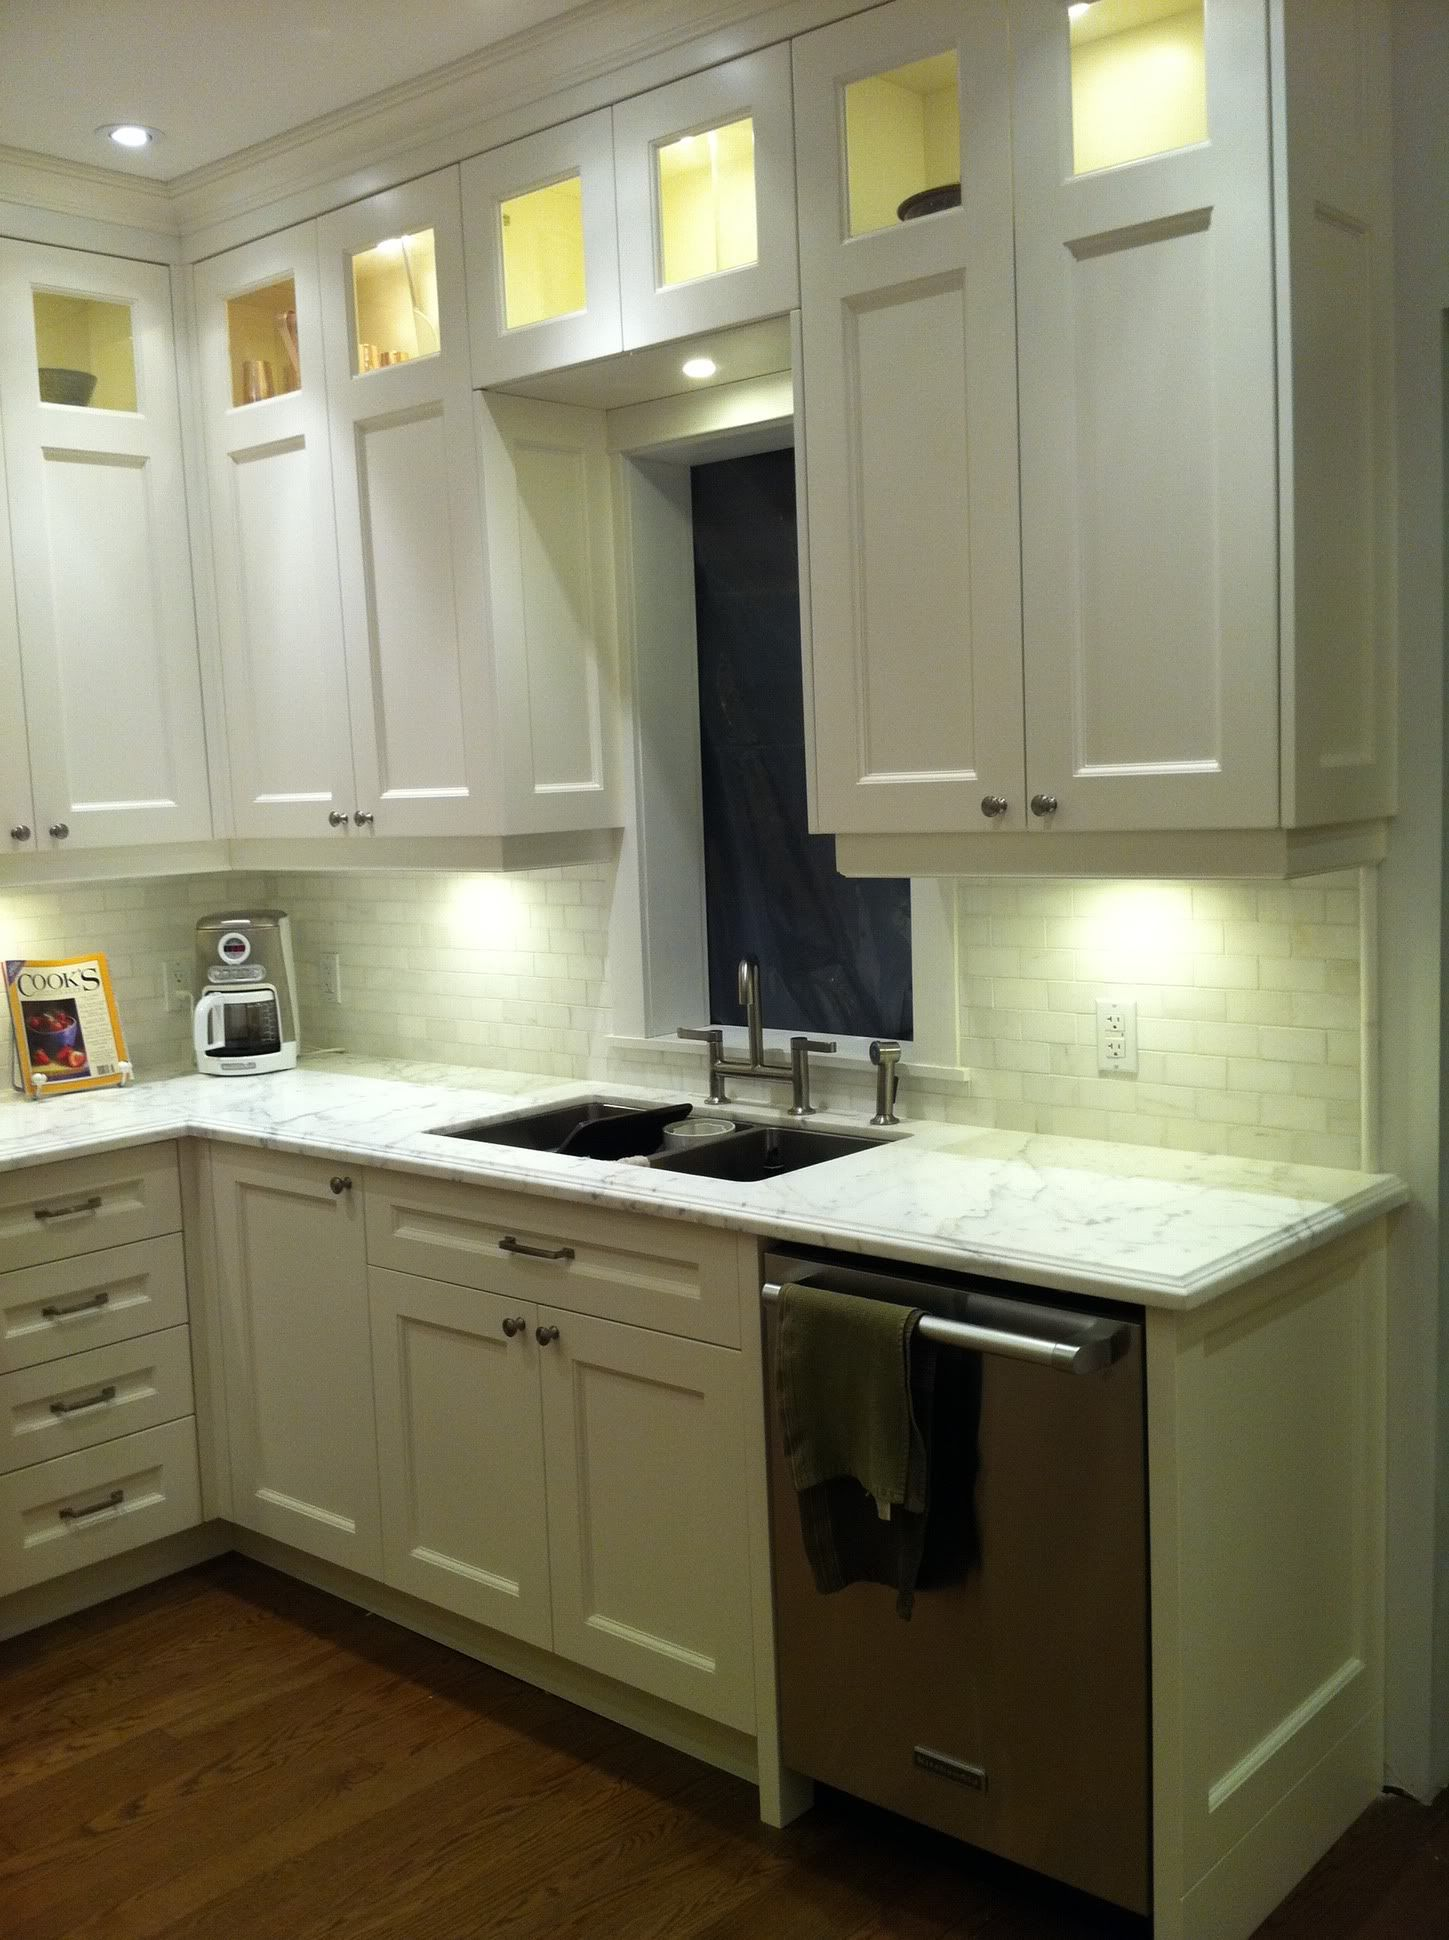 Kitchen Cabinets That Extend To  Ft Ceiling